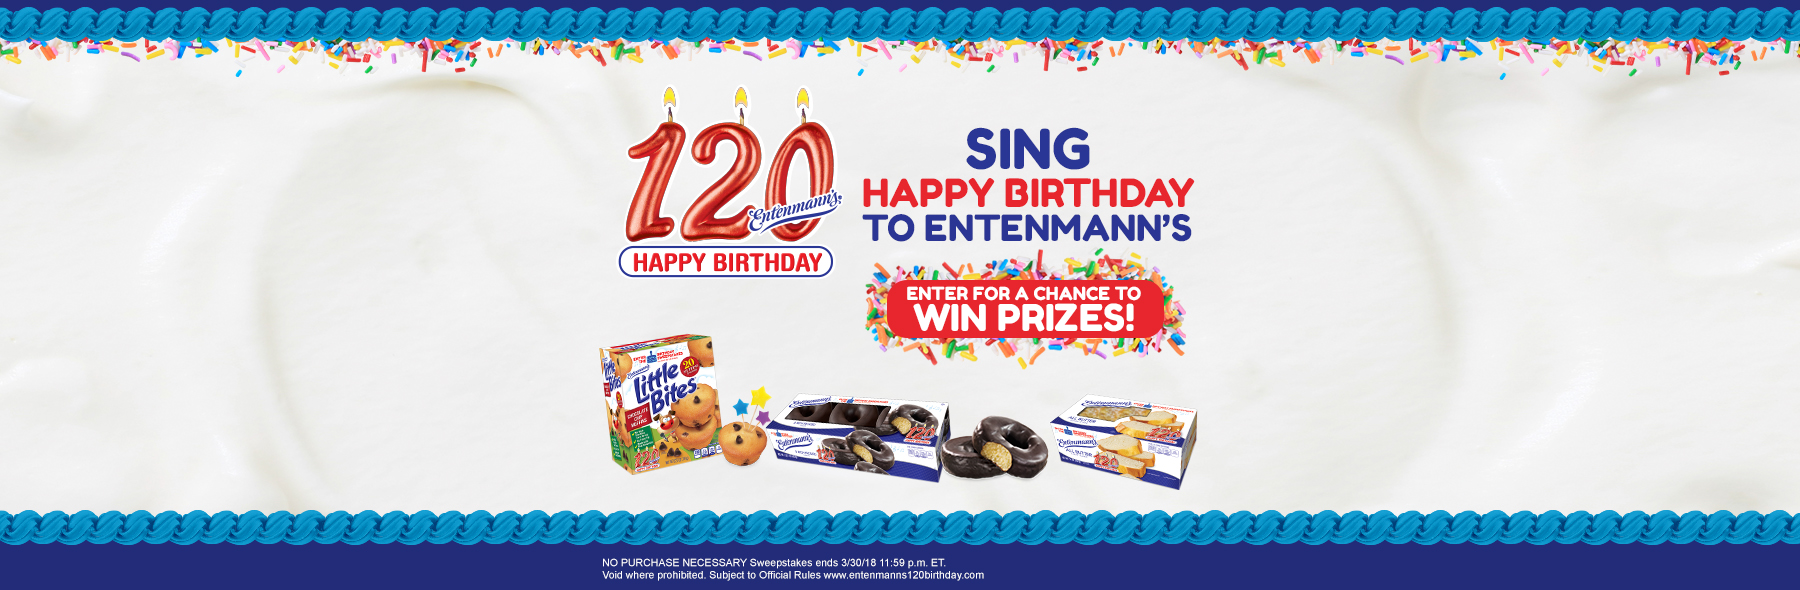 120 Happy Birthday - Sing Happy Birthday to Entenmann's - Enter for a chance to win prizes!